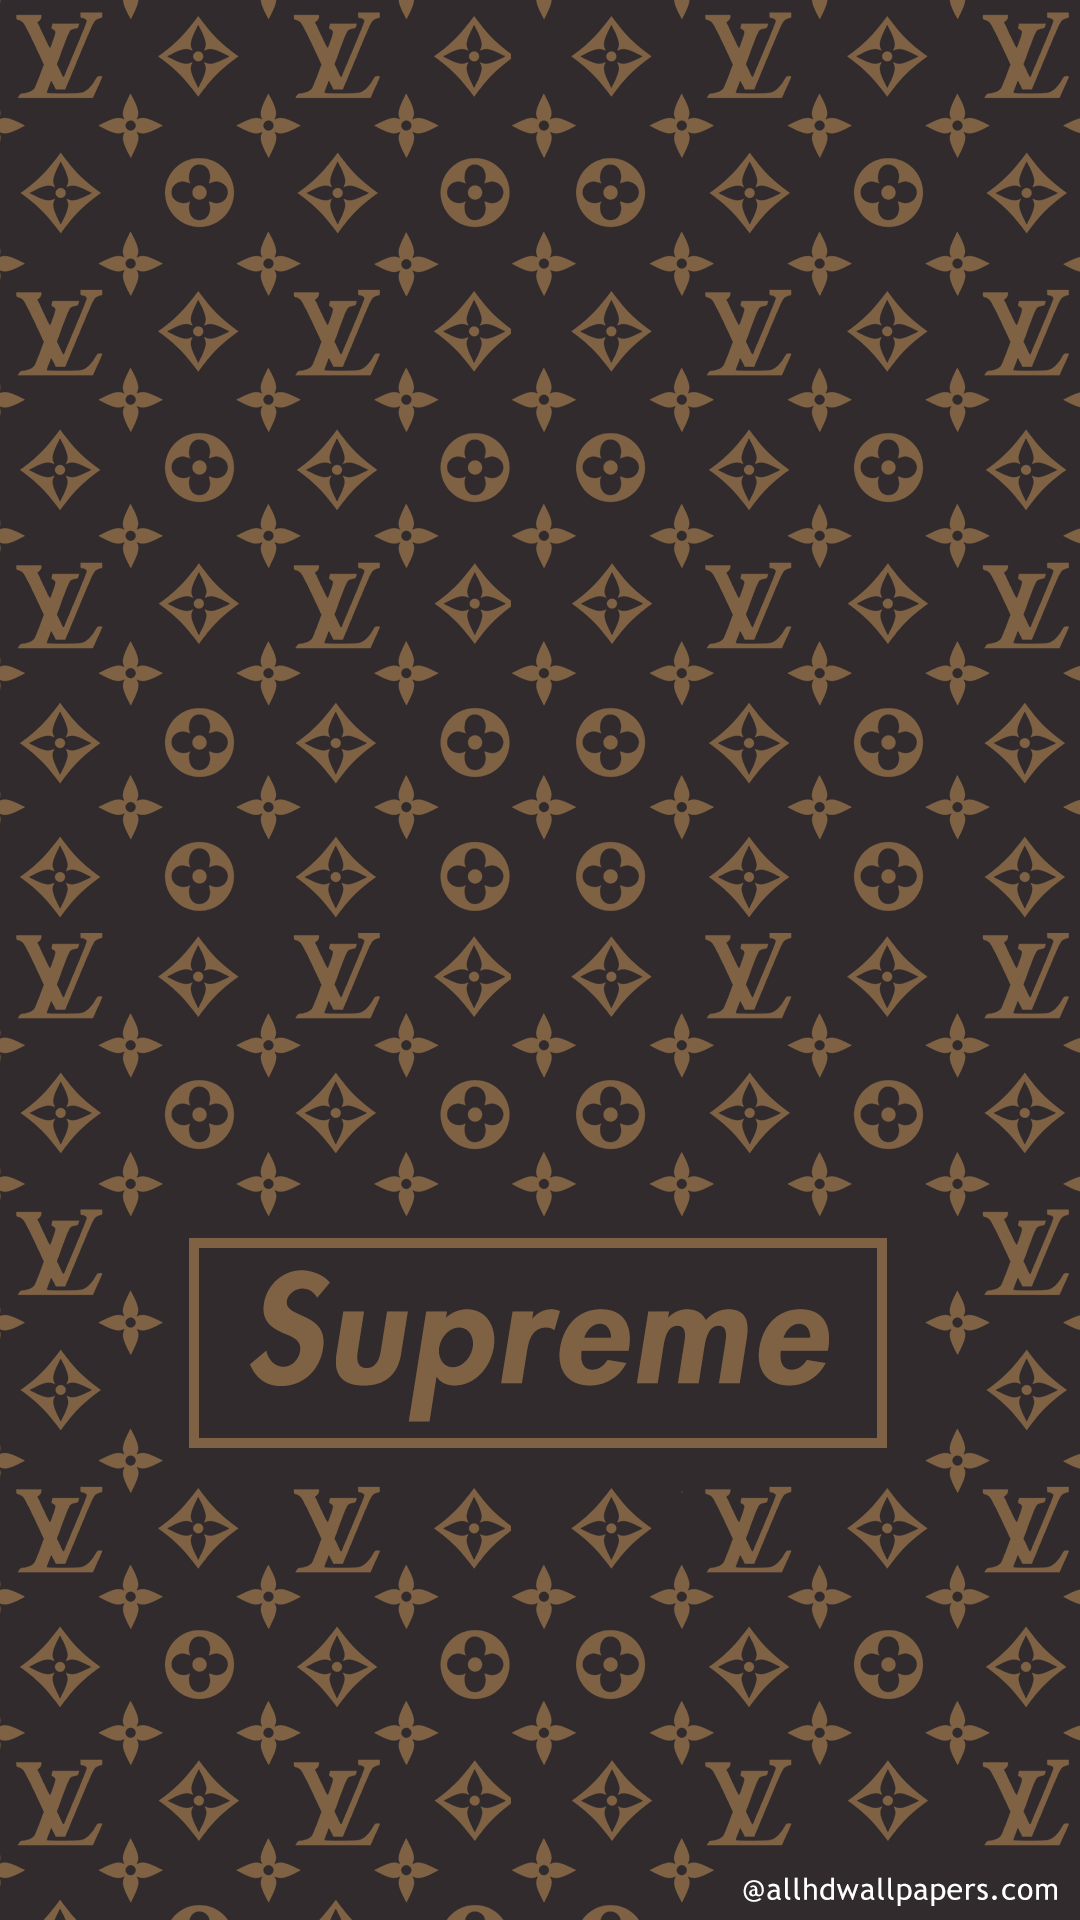 70  Supreme Wallpapers in 4K   AllHDWallpapers Supreme Wallpaper for mobile